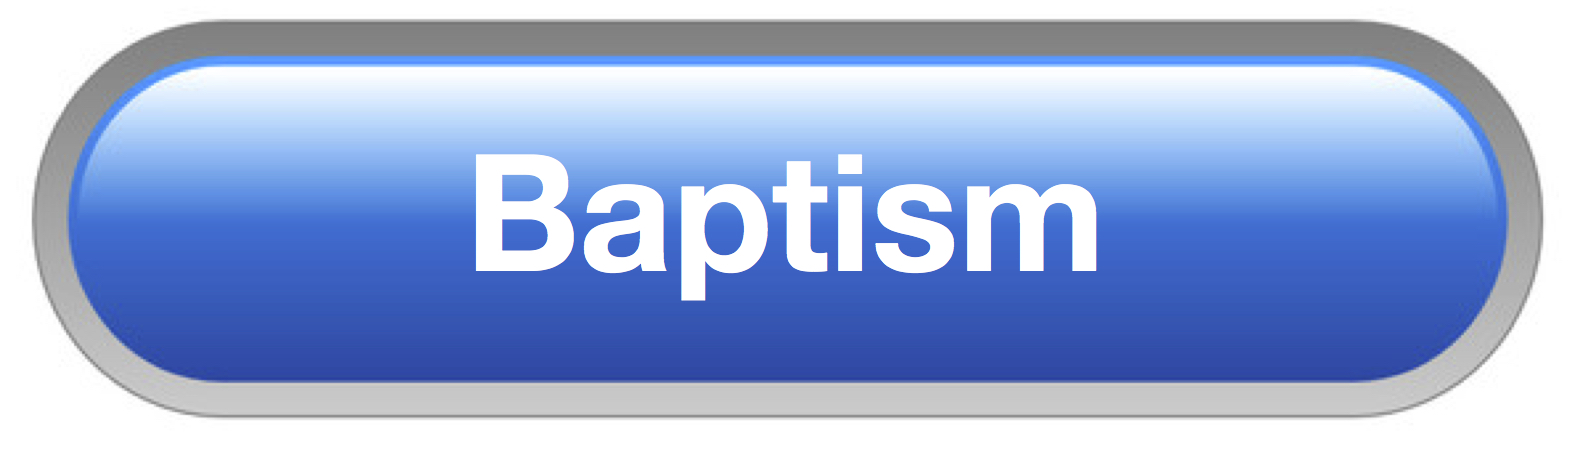 02- Baptism button